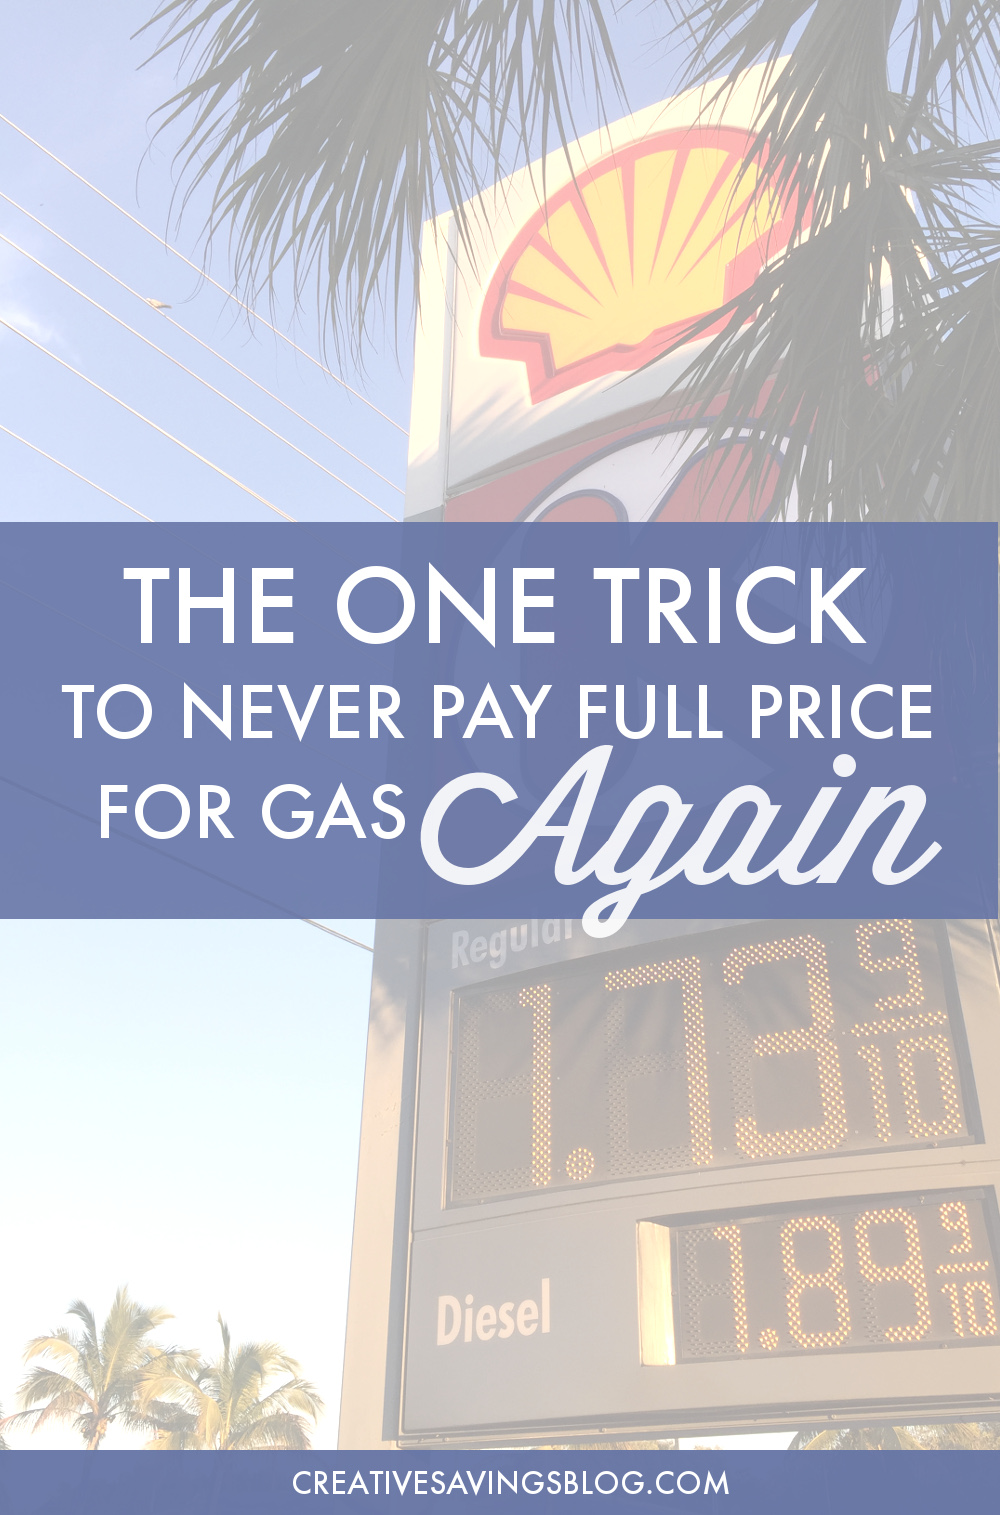 Never pay full price for gas again with this incredibly simple and convenient program. It takes just 5 minutes to set up, and rewards add up FAST. You'll kick yourself for not trying this sooner!